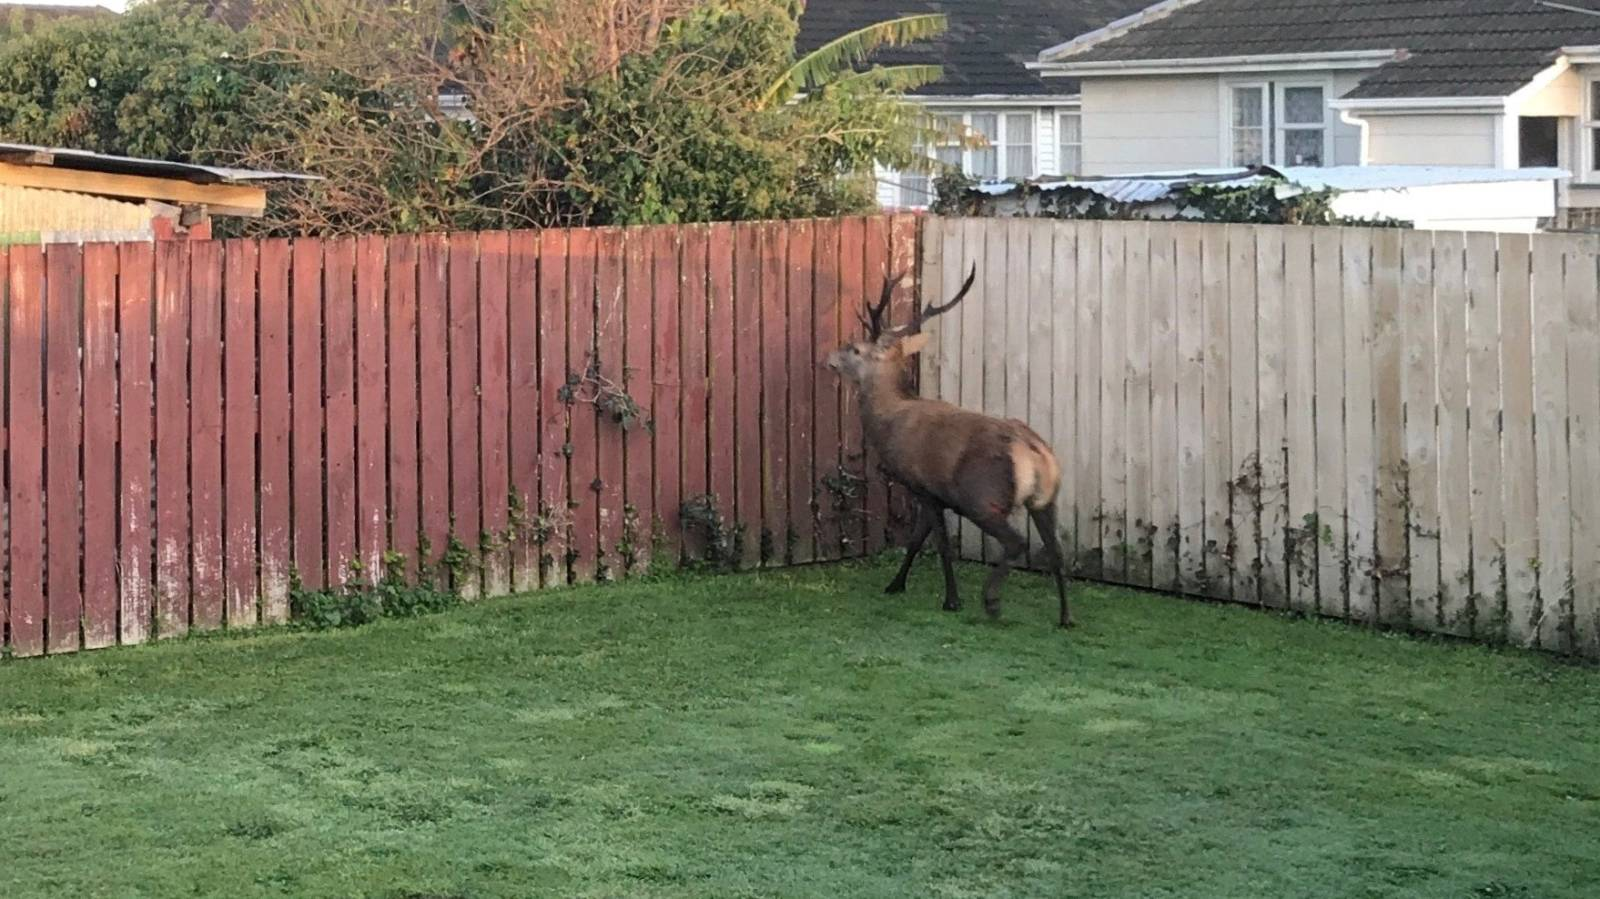 Calls for more culling as deer munch their way through gardens